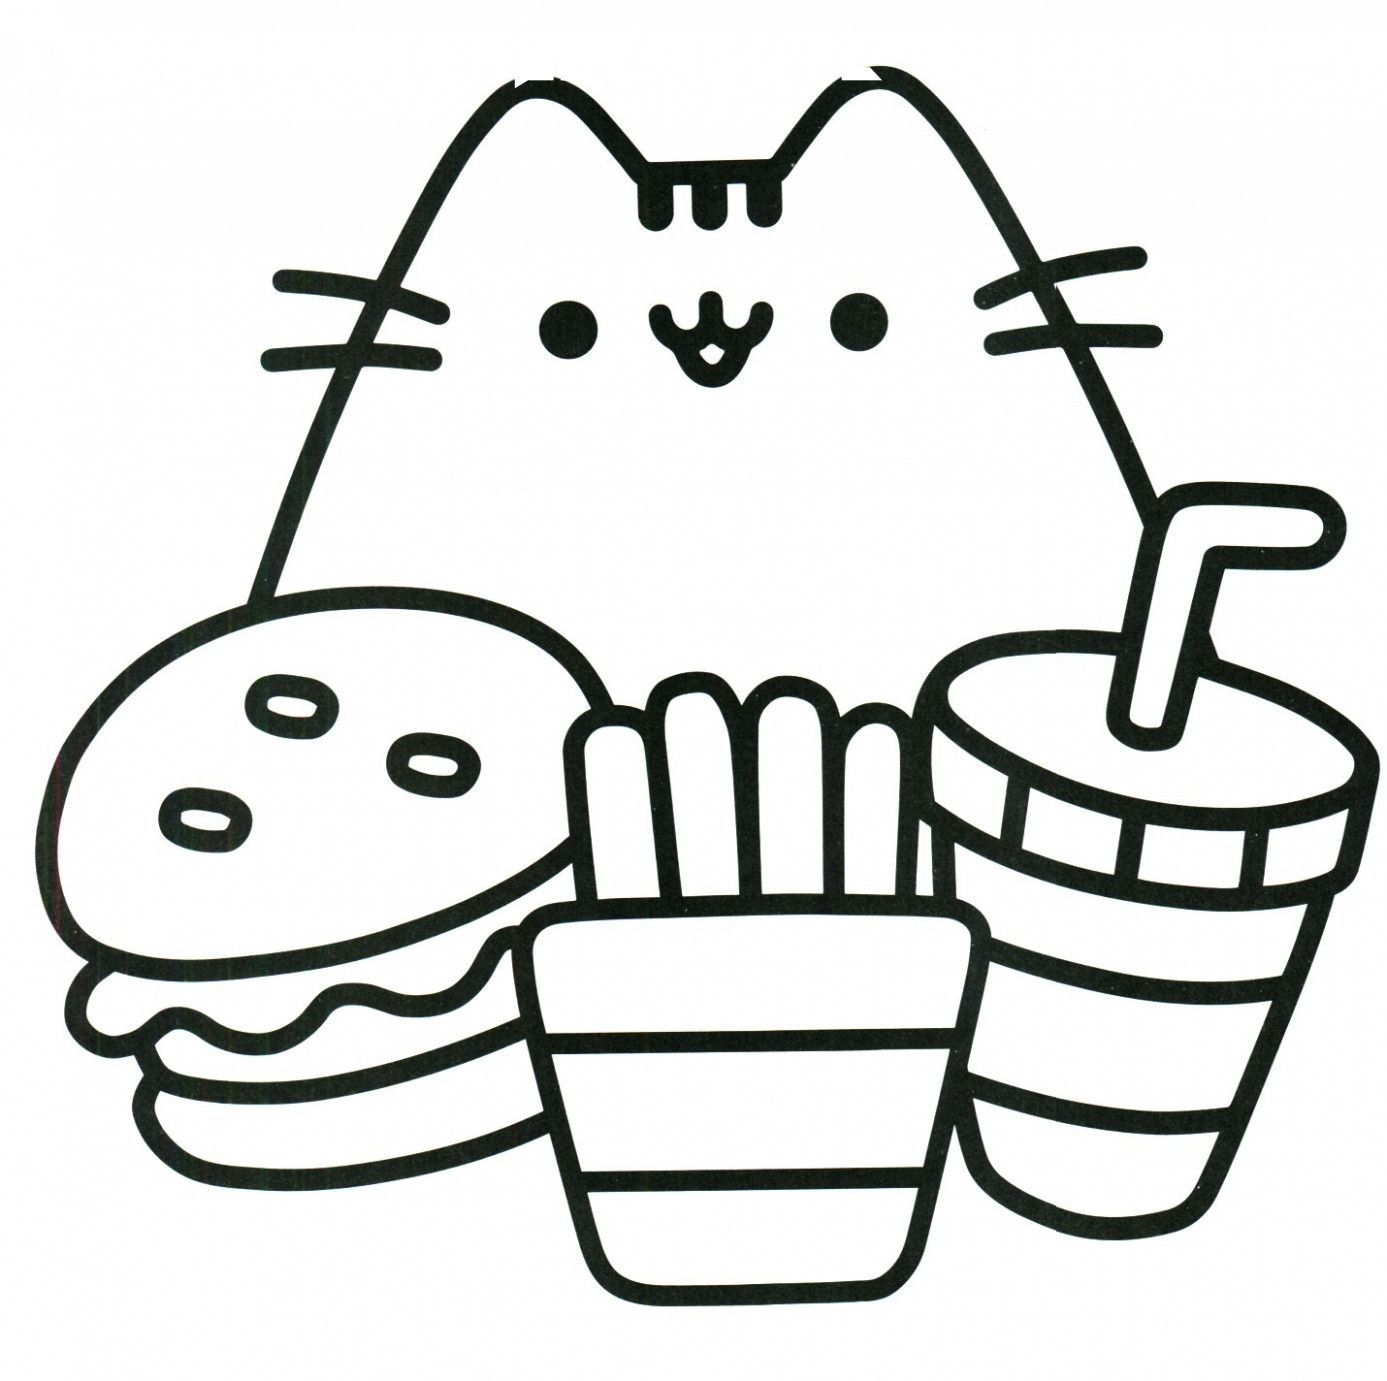 6 Free Printable Cute Coloring Pages In 2020 Pusheen Coloring Pages Hello Kitty Colouring Pages Kids Printable Coloring Pages